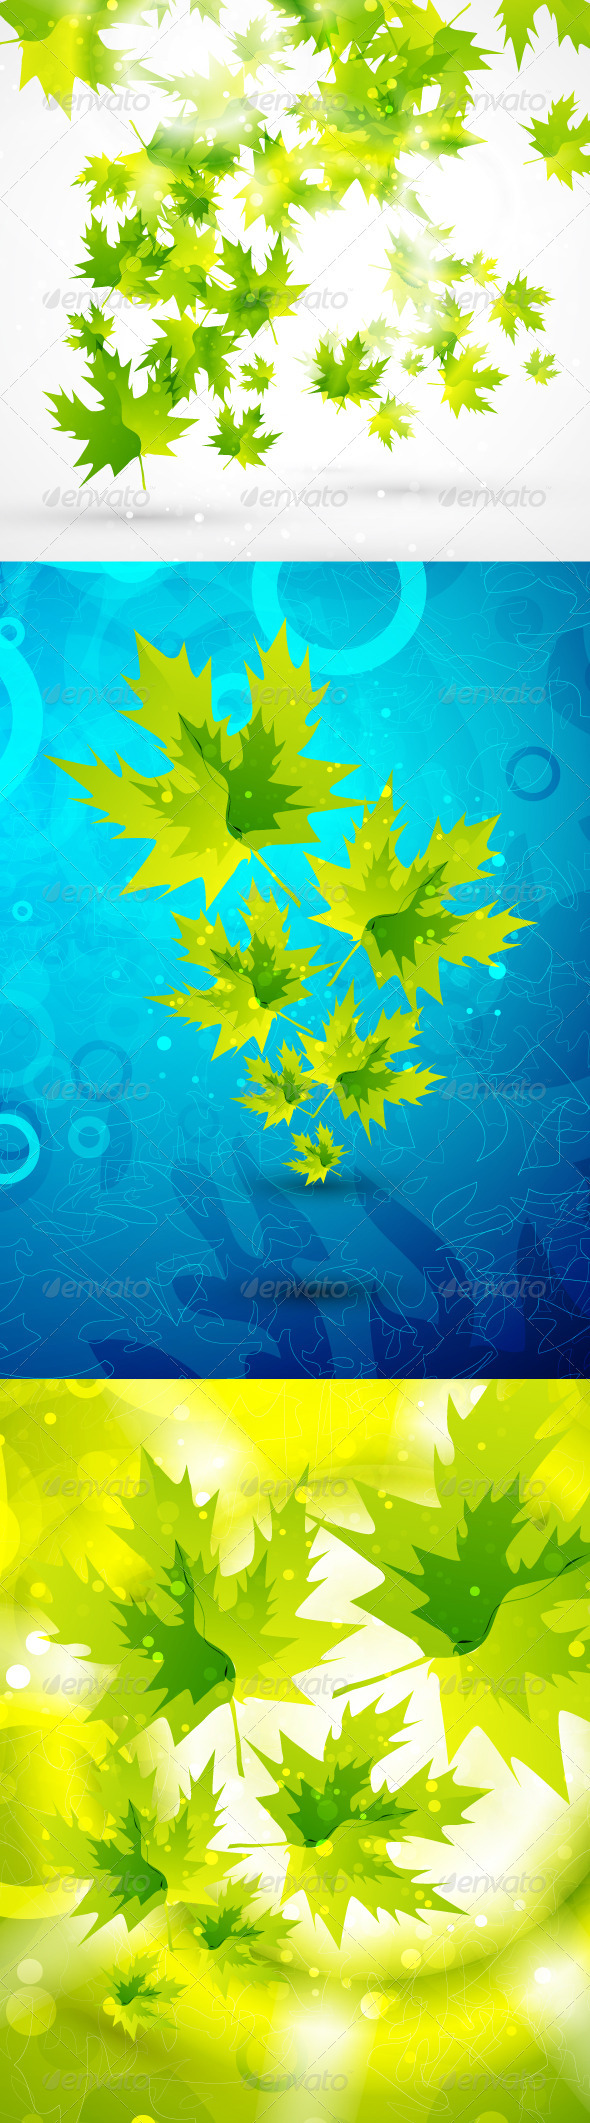 Maple Leaves Shiny Backgrounds - Flowers & Plants Nature